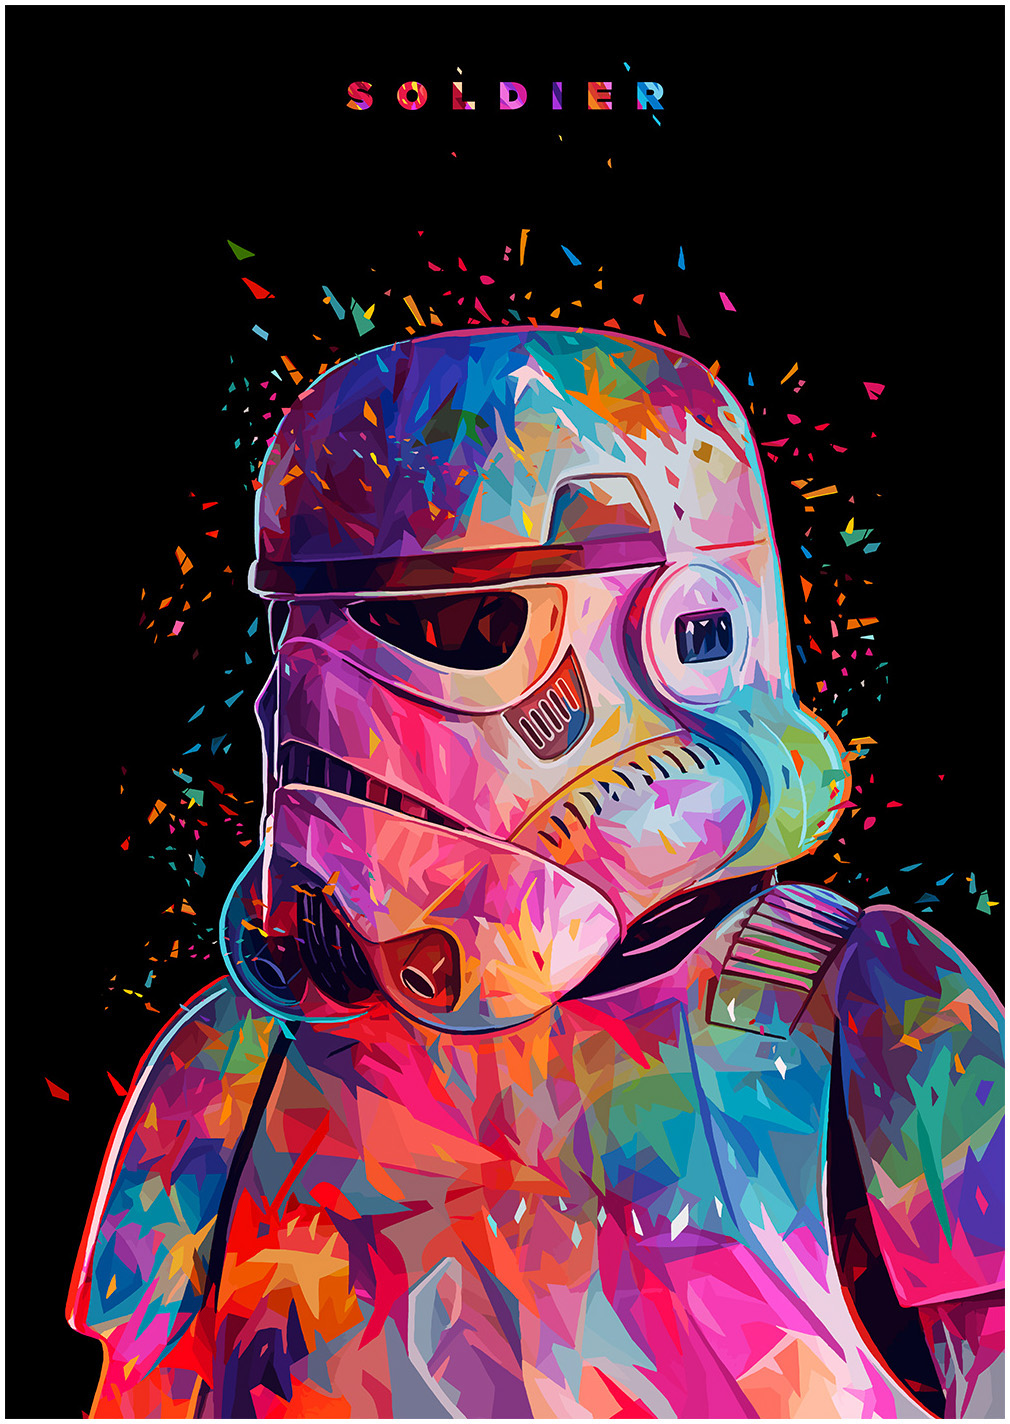 Star Wars Tribute - Stormtrooper by Alessandro Pautasso